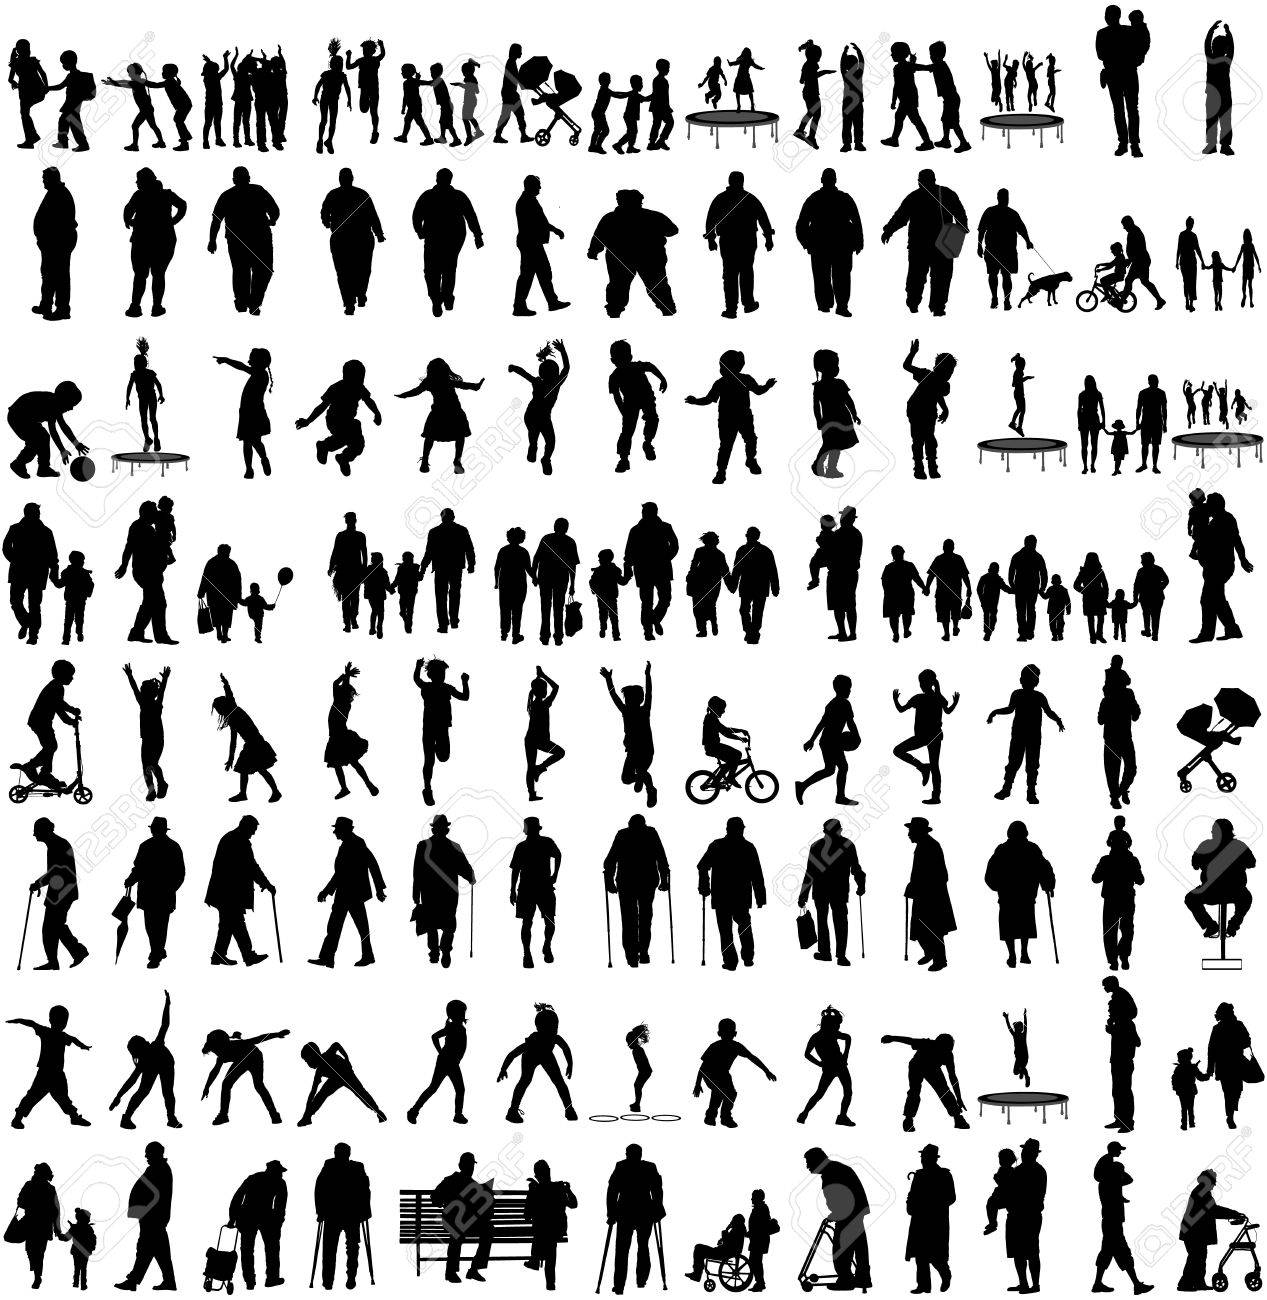 Big set of people silhouettes, children,parents,seniors, .Family groups, couples vector silhouette illustration isolated on white background. Fathers day. Fat persons. Older people, health care group. - 67480572